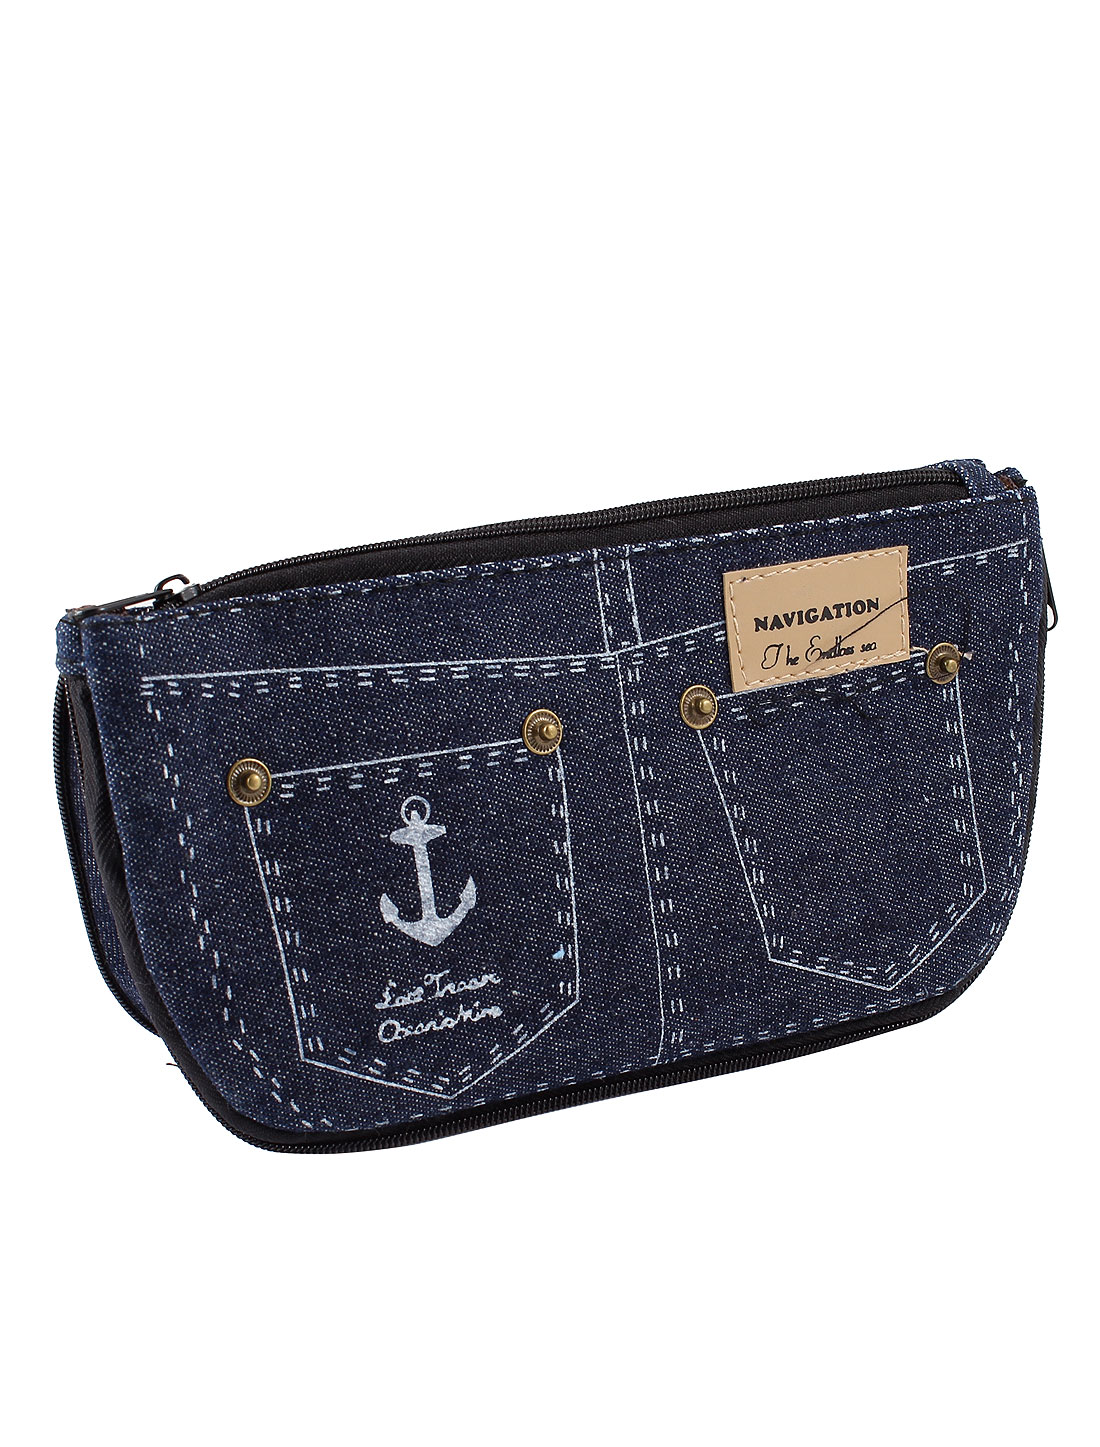 Black Dual Compartment Jeans Pocket Pattern Zip Up Coin Purse for Lady